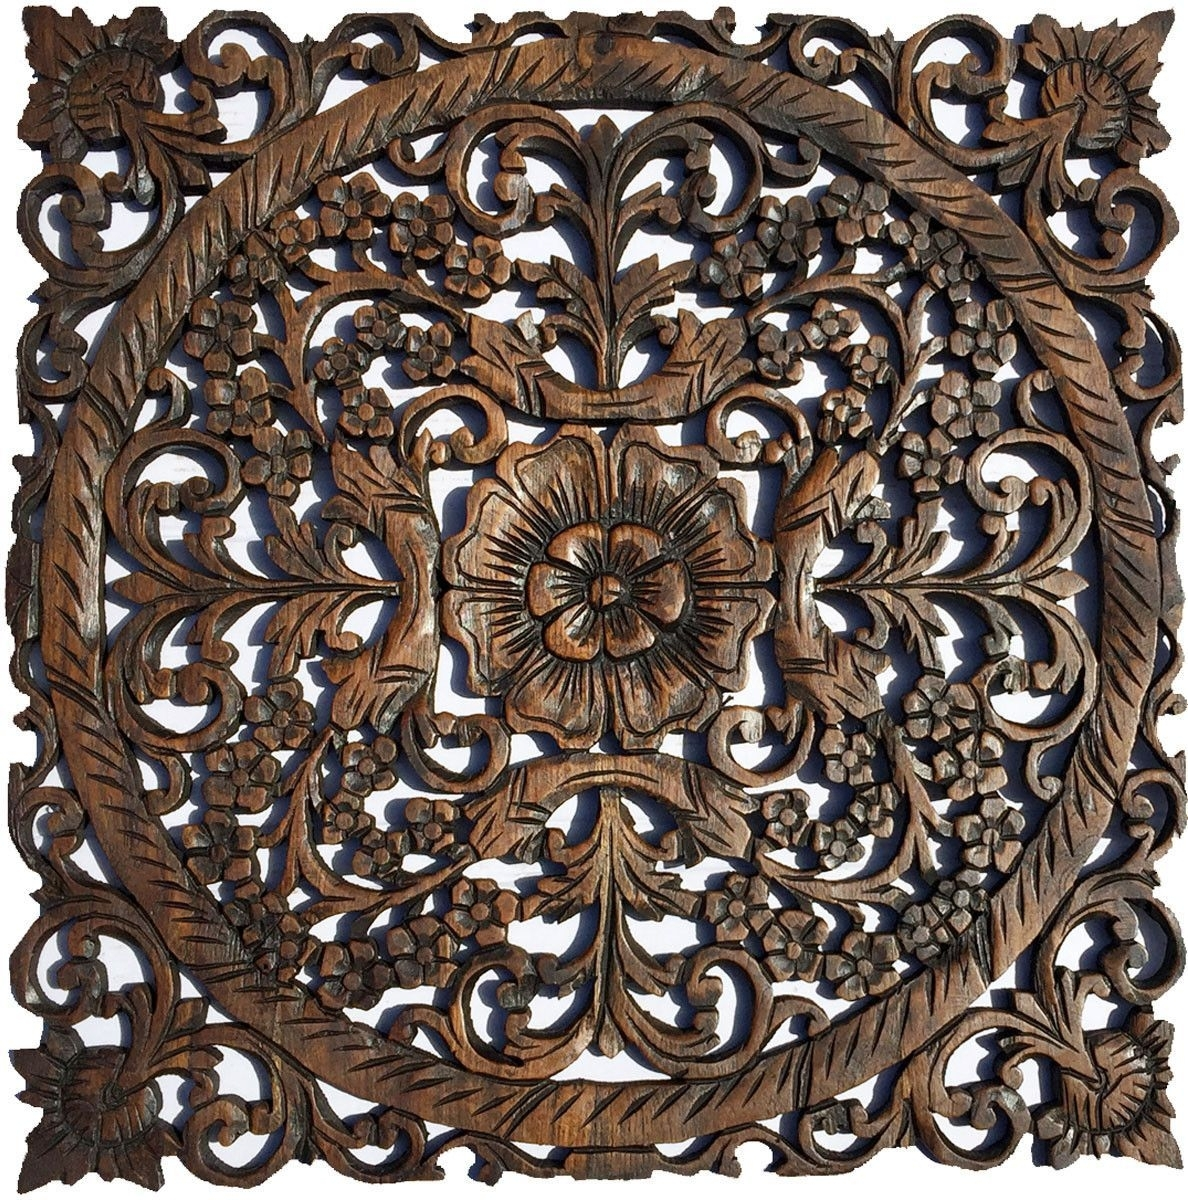 Oriental Carved Floral Wall Decor. Unique Asian Wood Wall Art. Large Throughout 2017 Carved Wood Wall Art (Gallery 7 of 15)